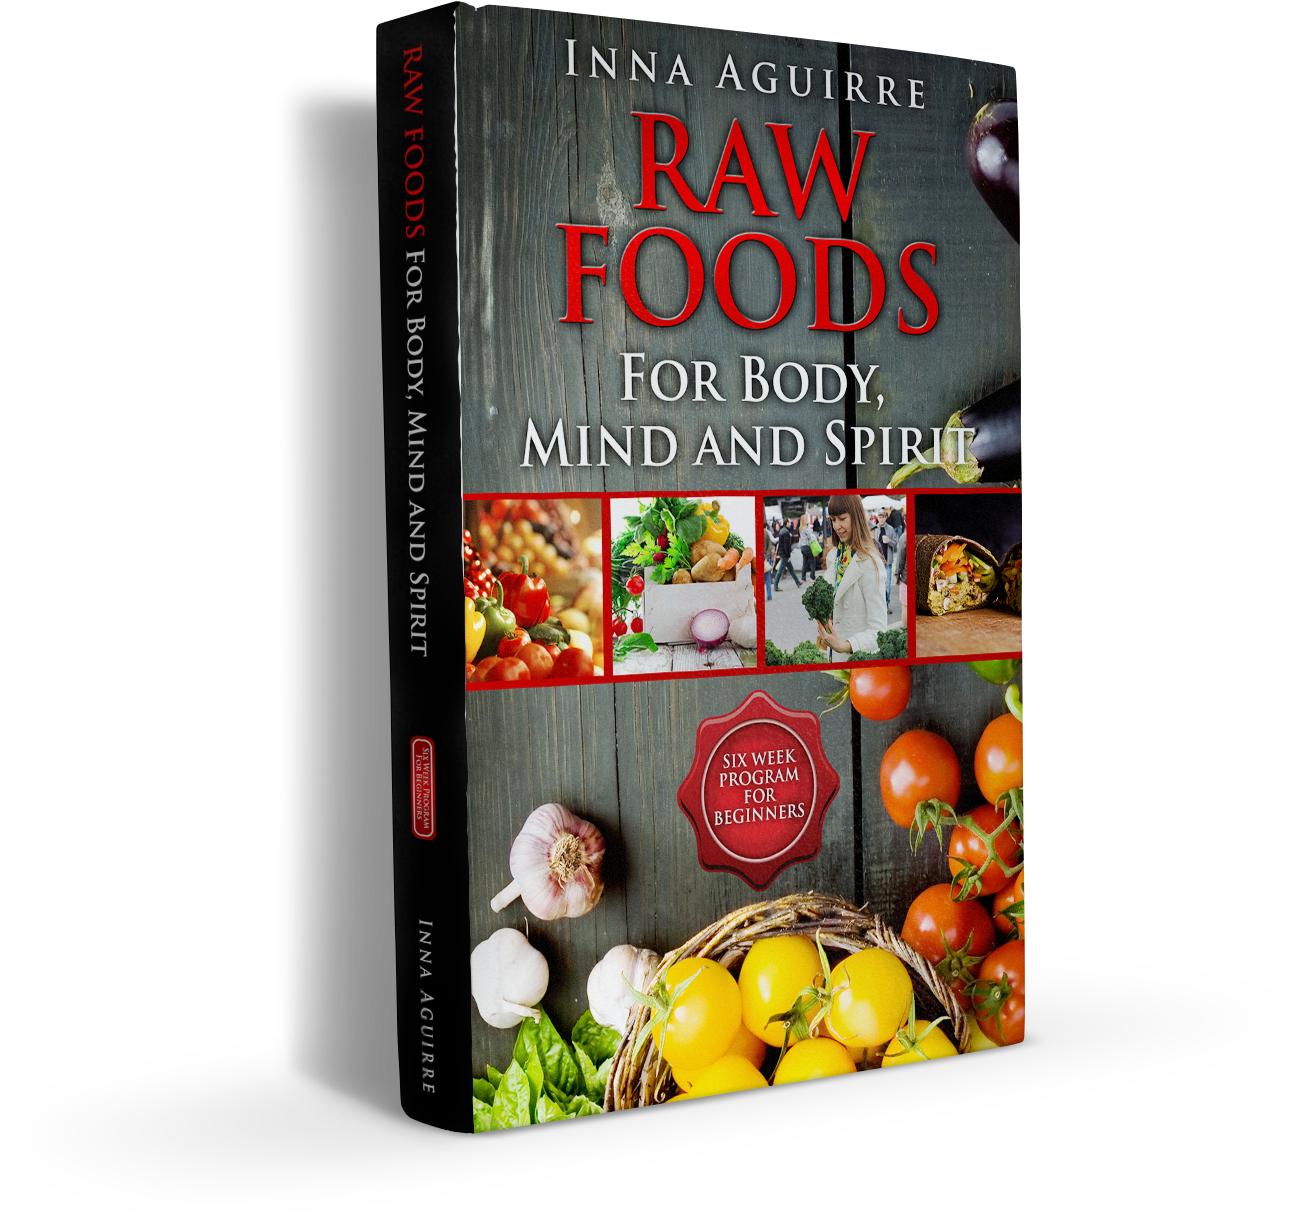 Raw foods for body mind and spirit six week program for beginners raw foods for body mind and spirit six week program for beginners forumfinder Choice Image